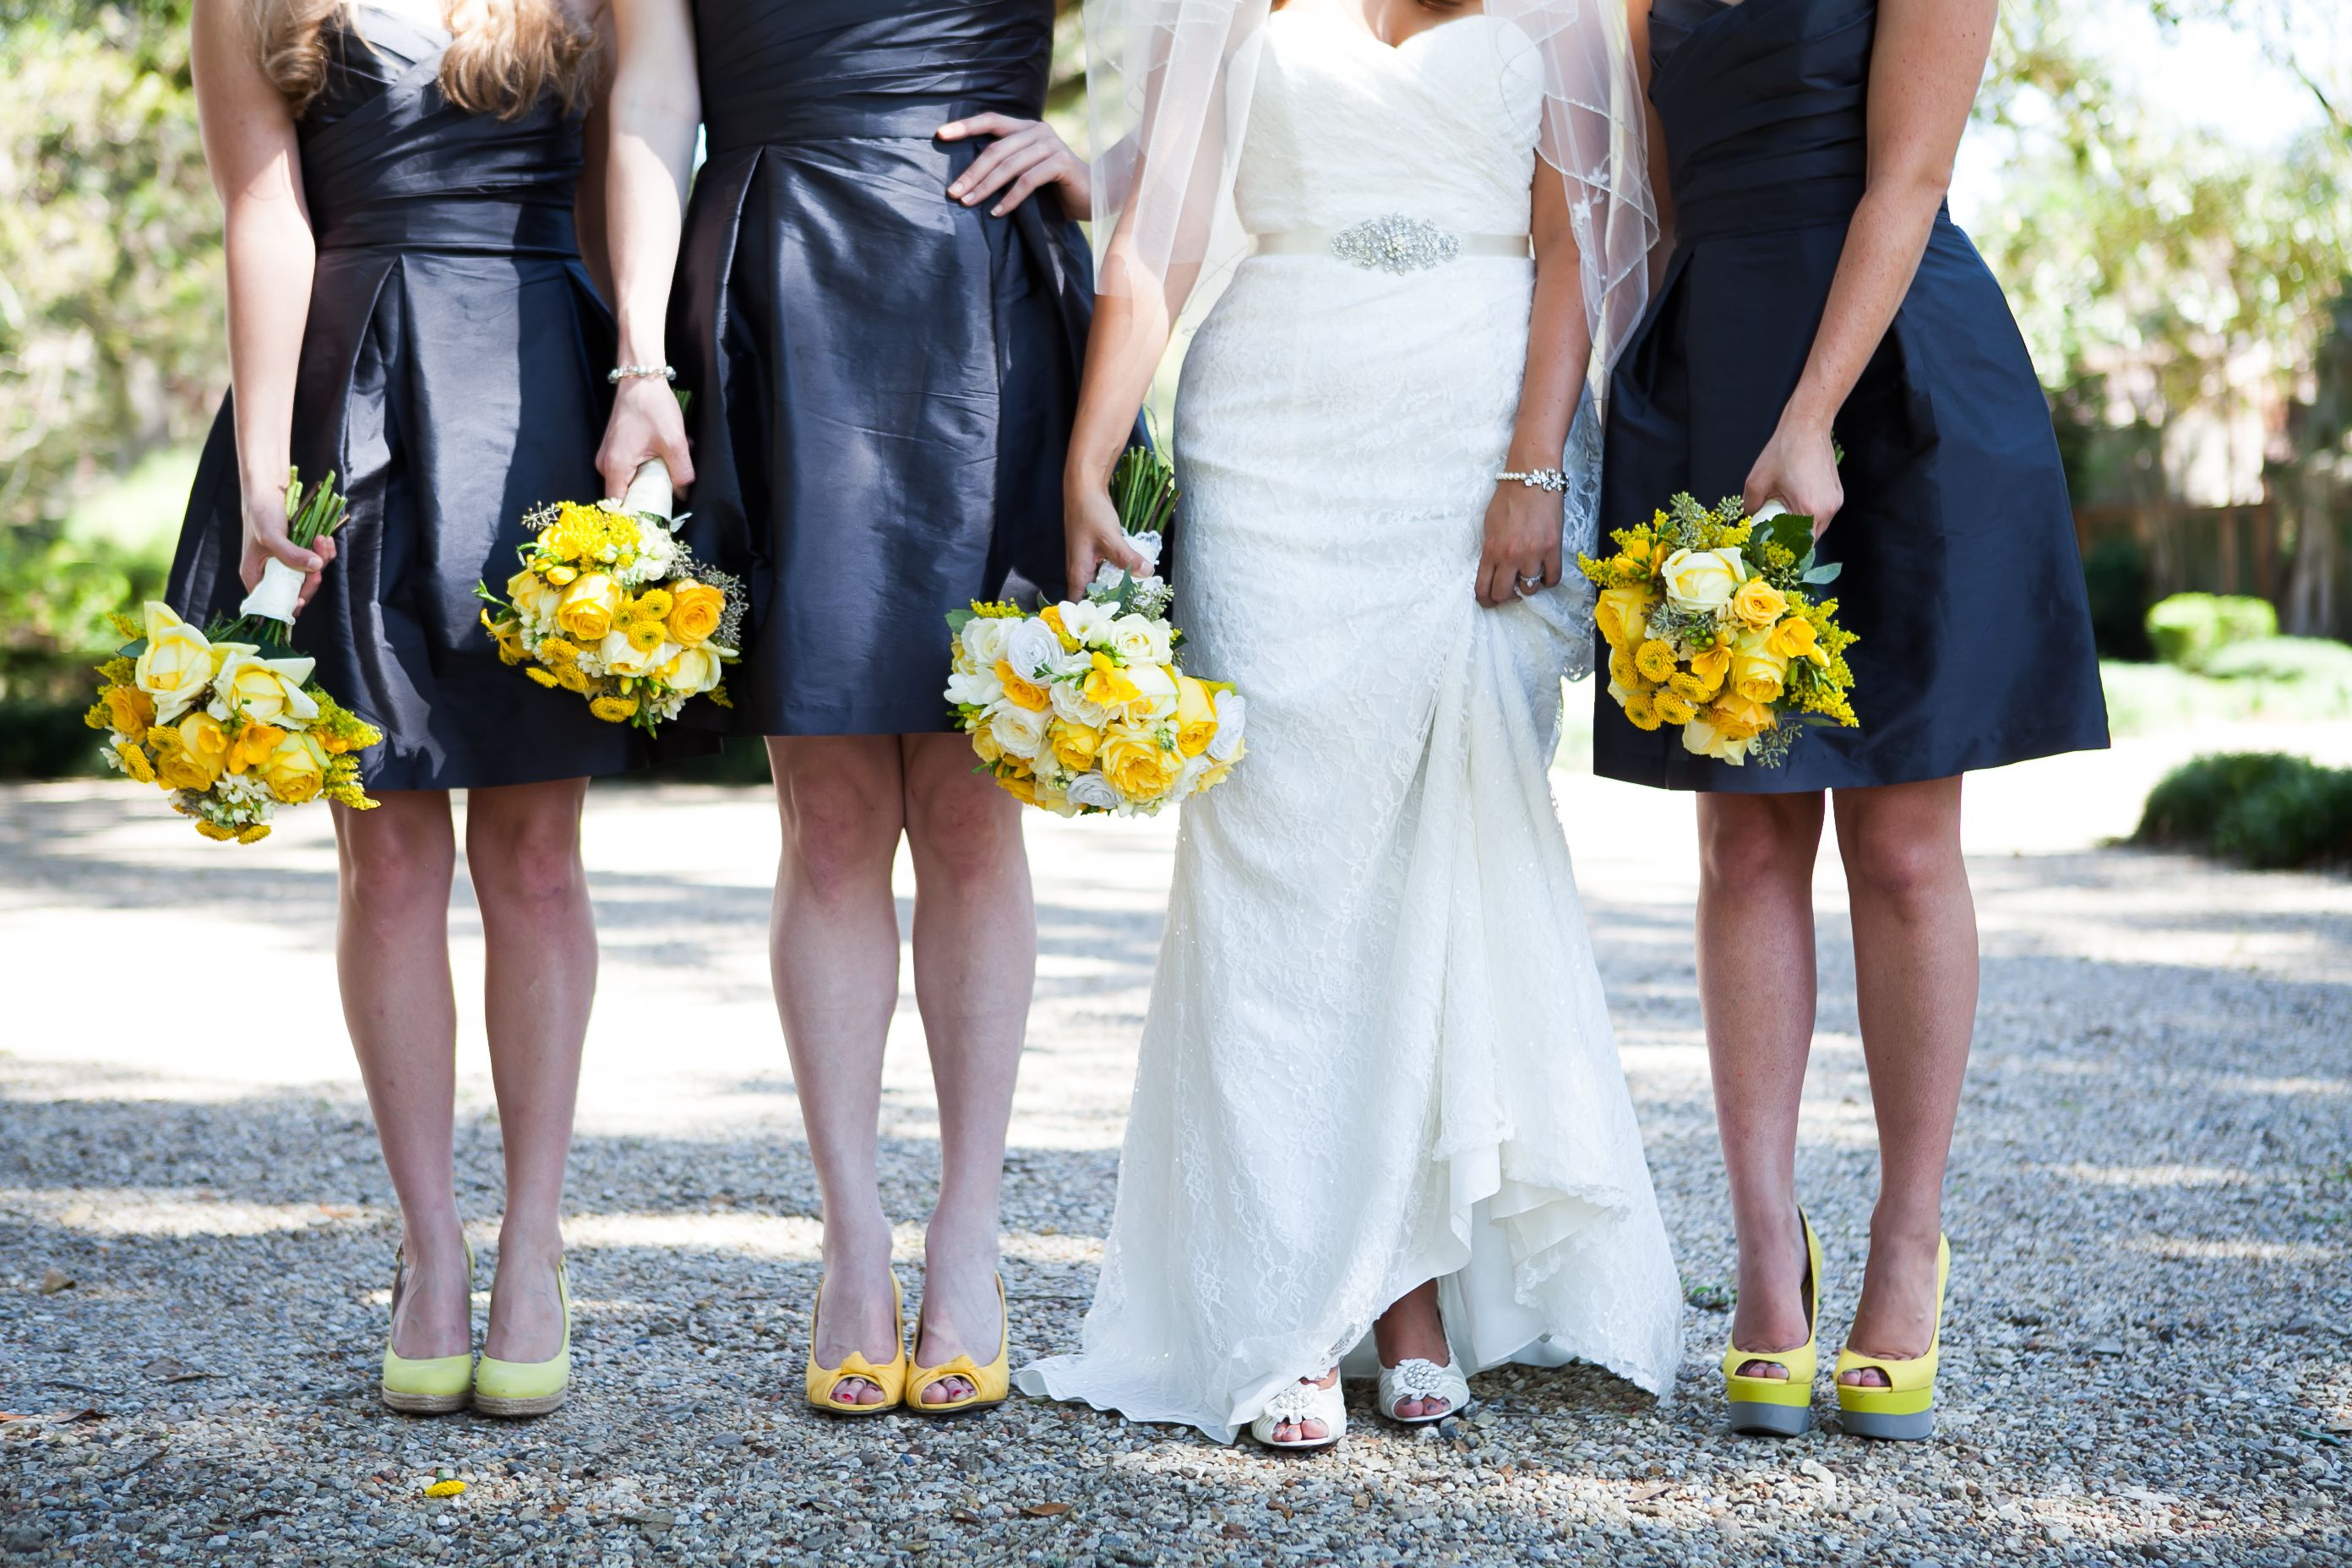 Charcoal bridesmaids dresses with yellow bouquets and yellow shoes